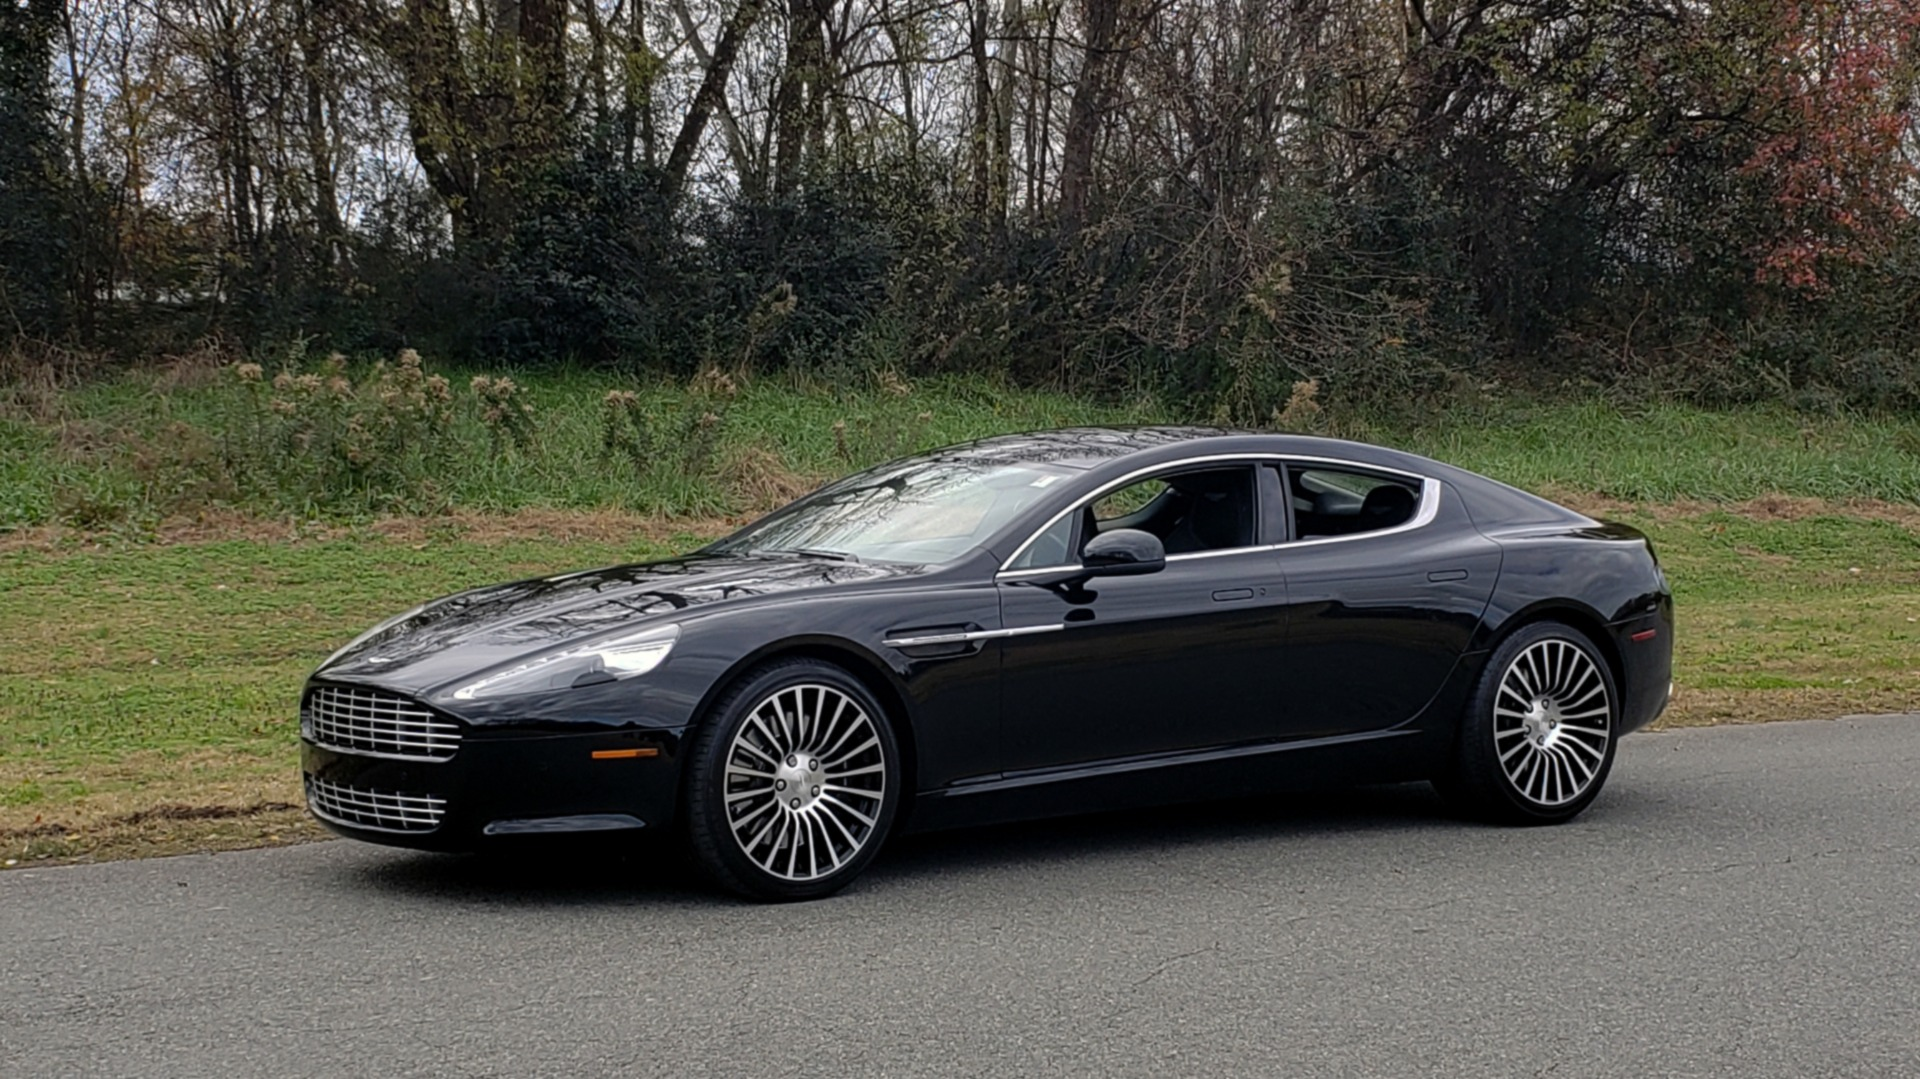 Used 2012 Aston Martin RAPIDE LUXURY 6.0L V12 / NAV / B&O SND / ENTERTAINMENT / REARVIEW for sale Sold at Formula Imports in Charlotte NC 28227 80